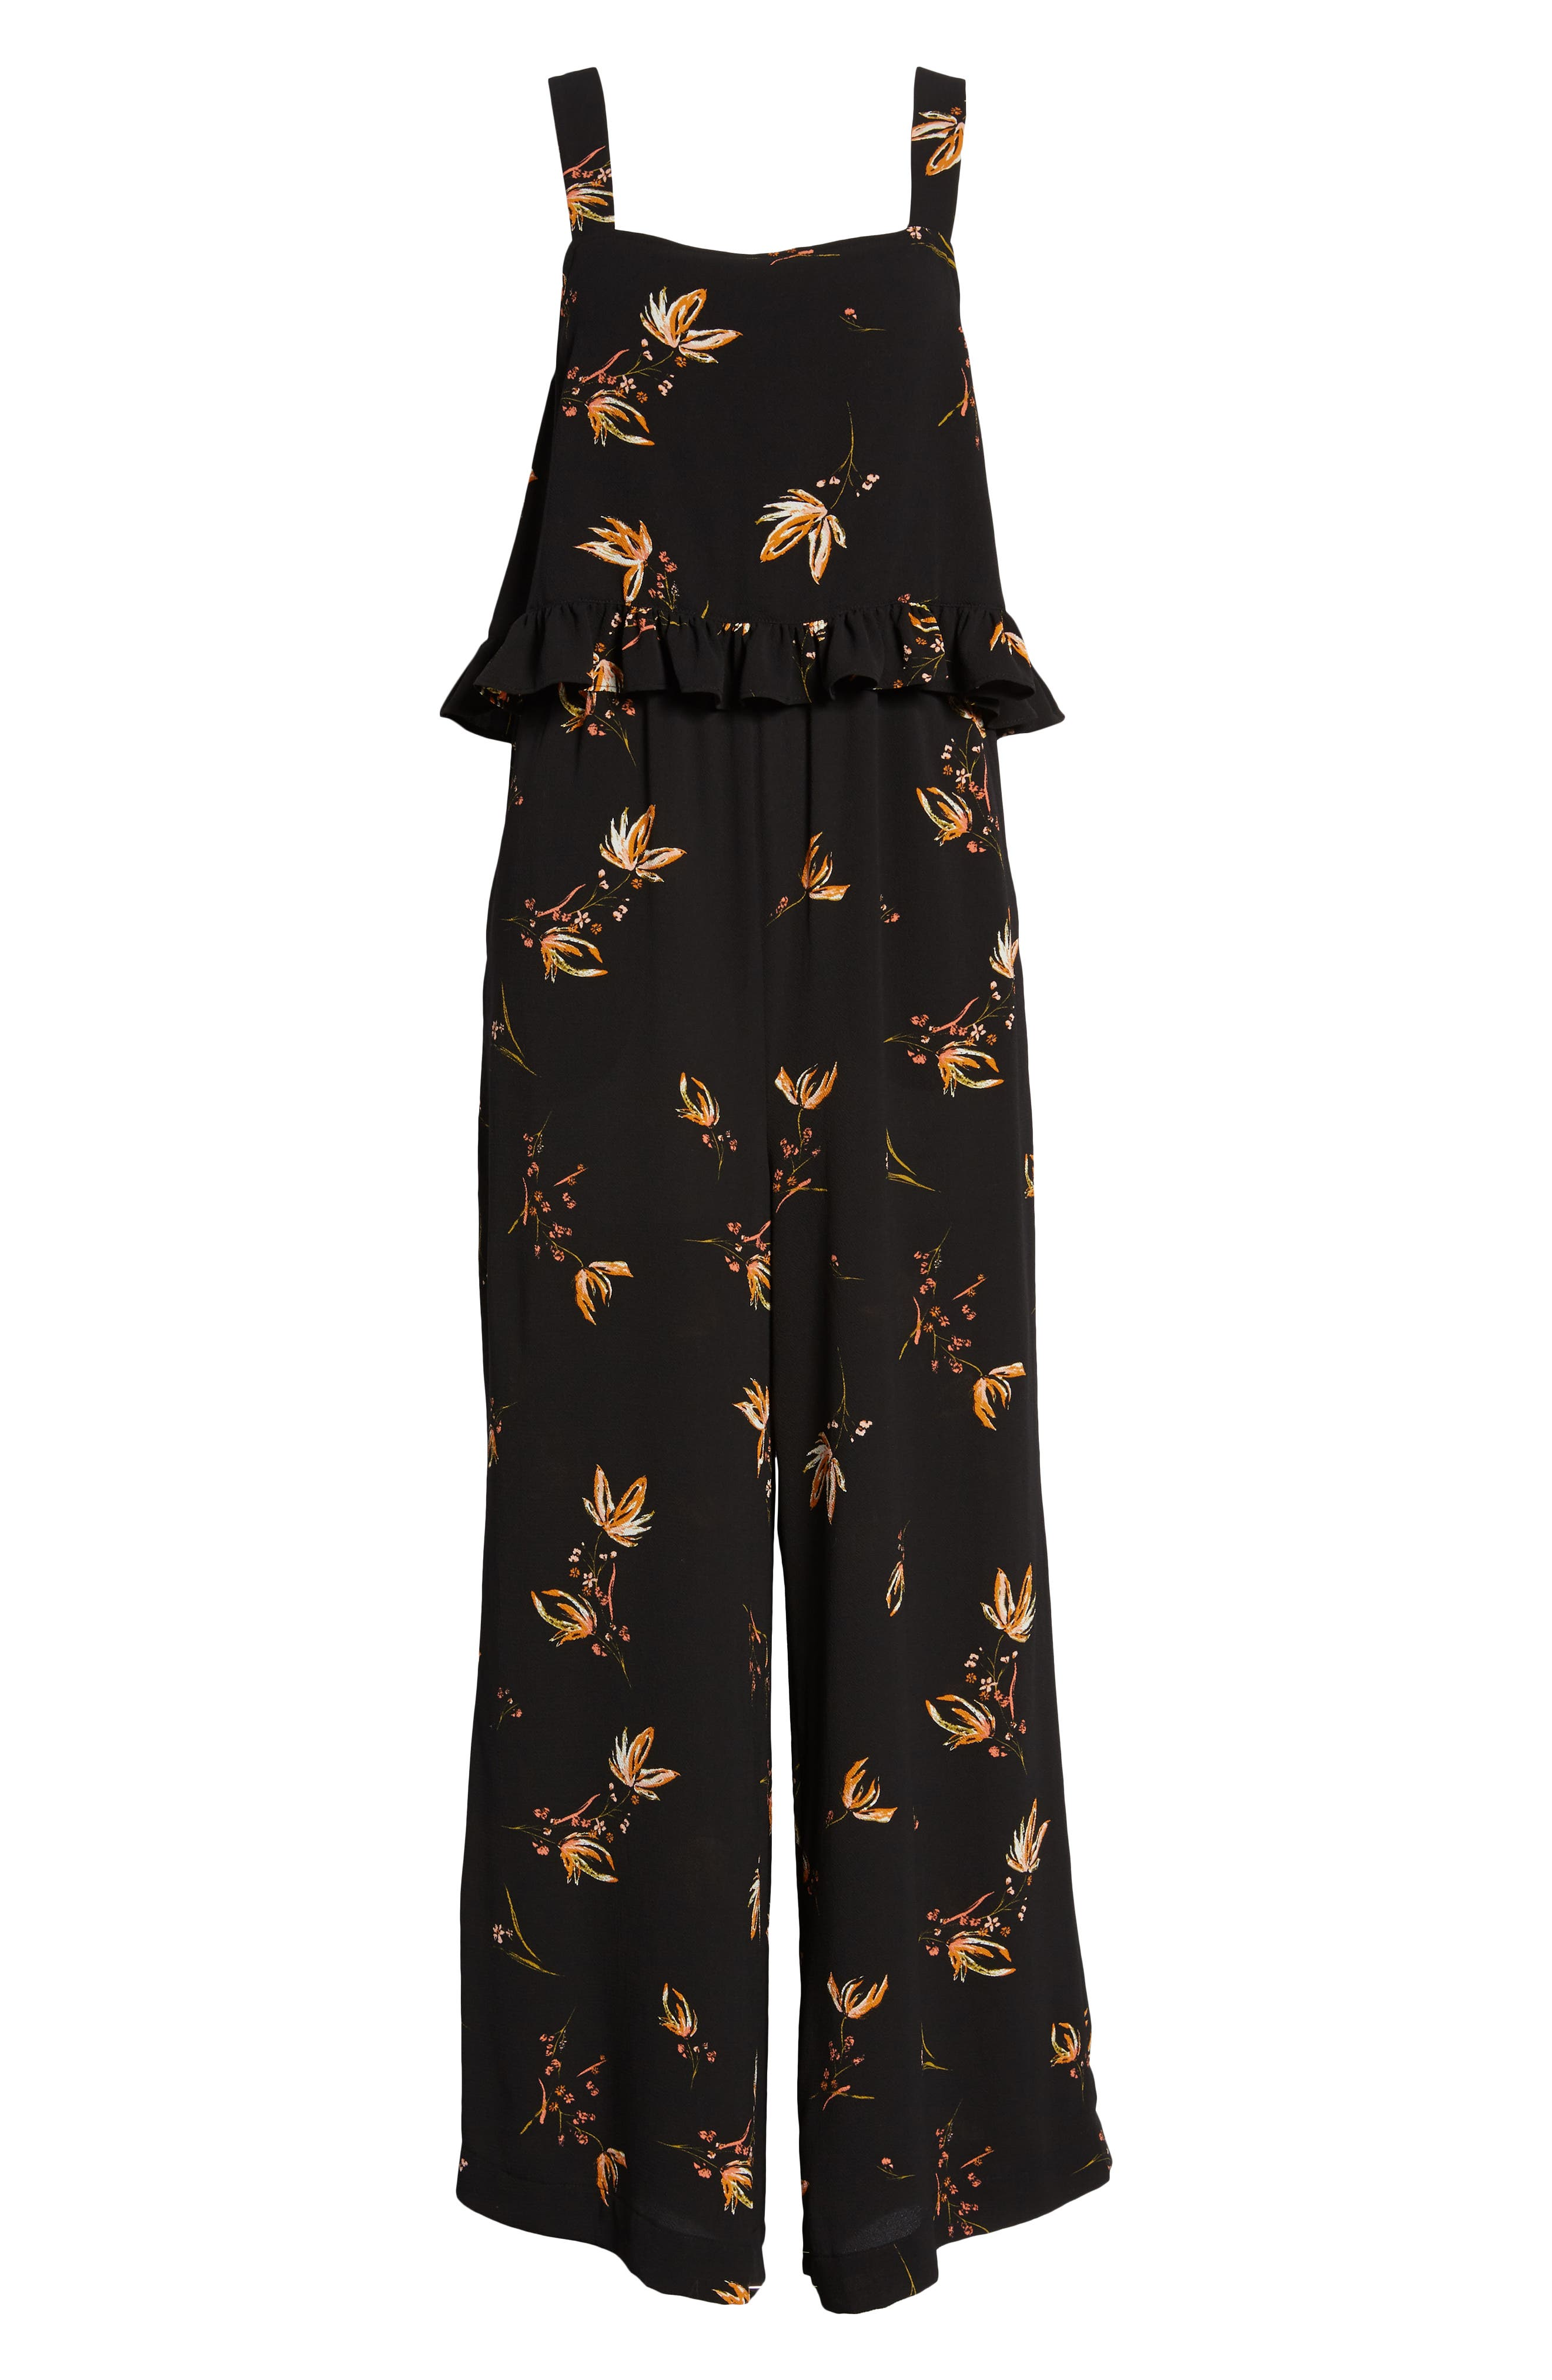 Ruffled Floral Print Jumpsuit,                             Alternate thumbnail 7, color,                             Black Camilla Spaced Floral